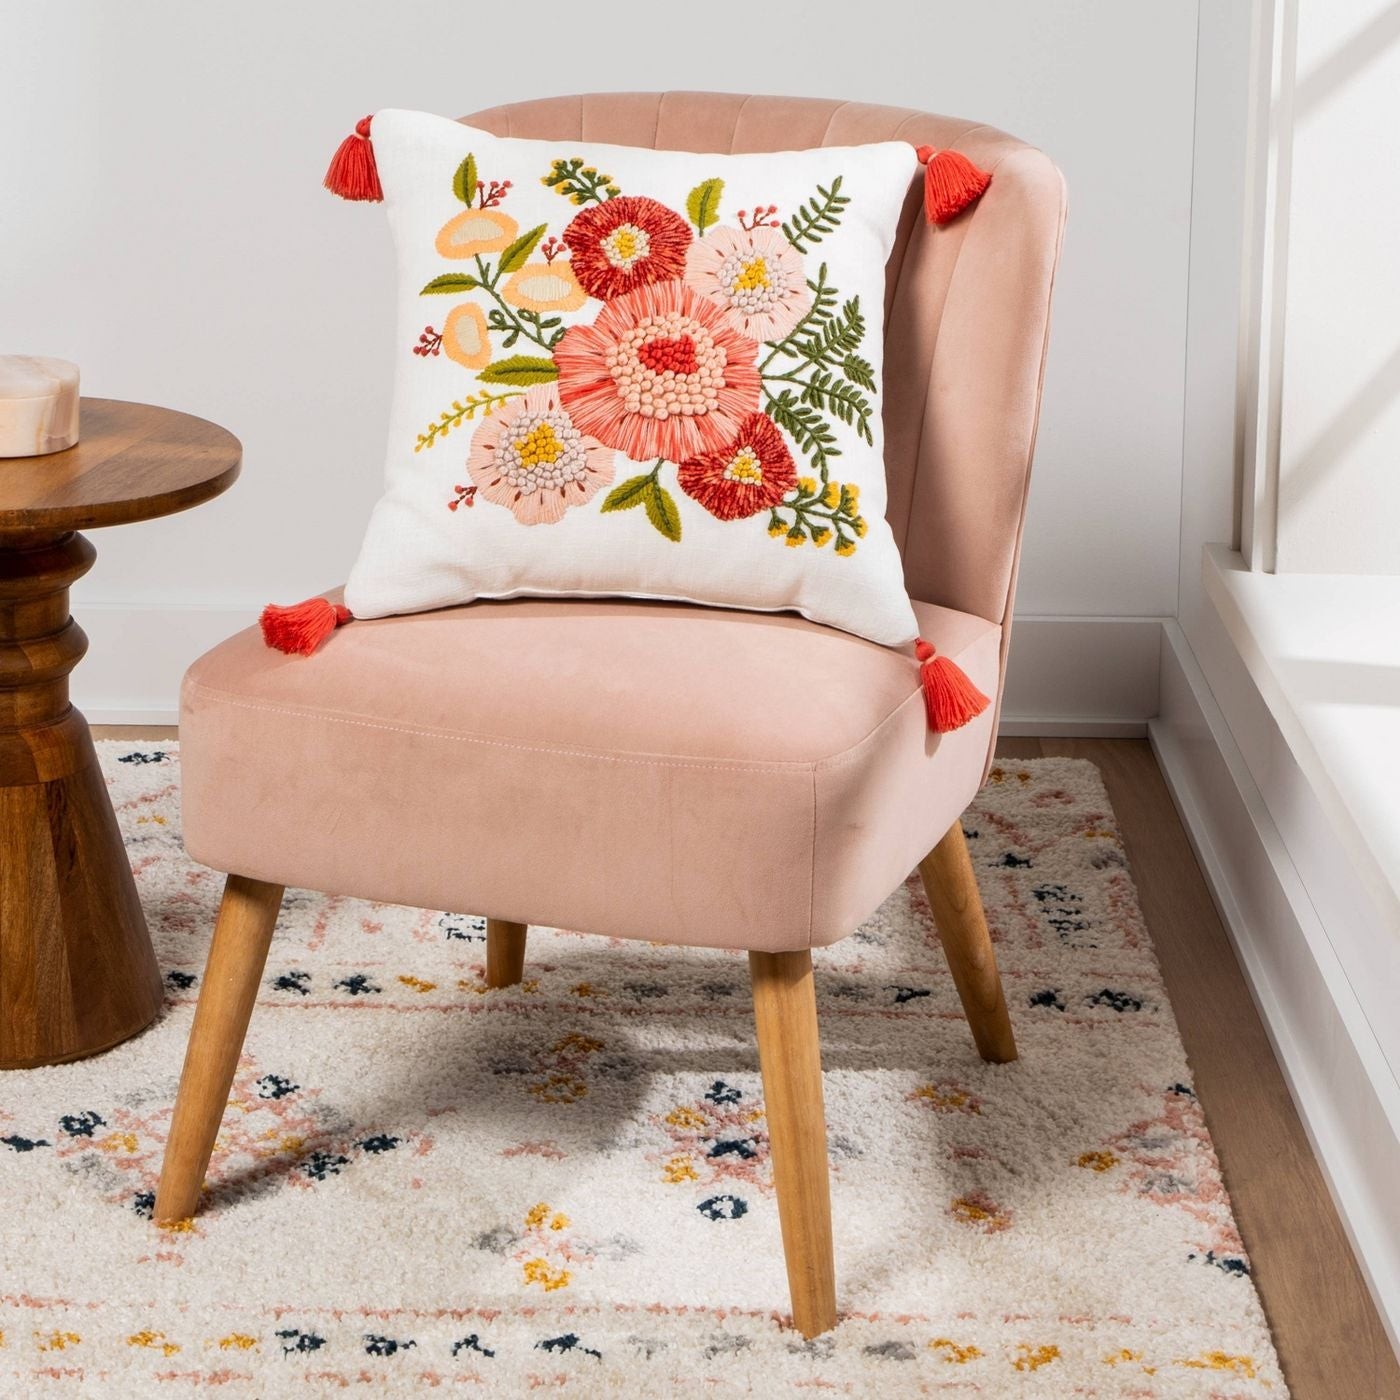 square white pillow with embroidered pink and red flowers and red tassels in each corner